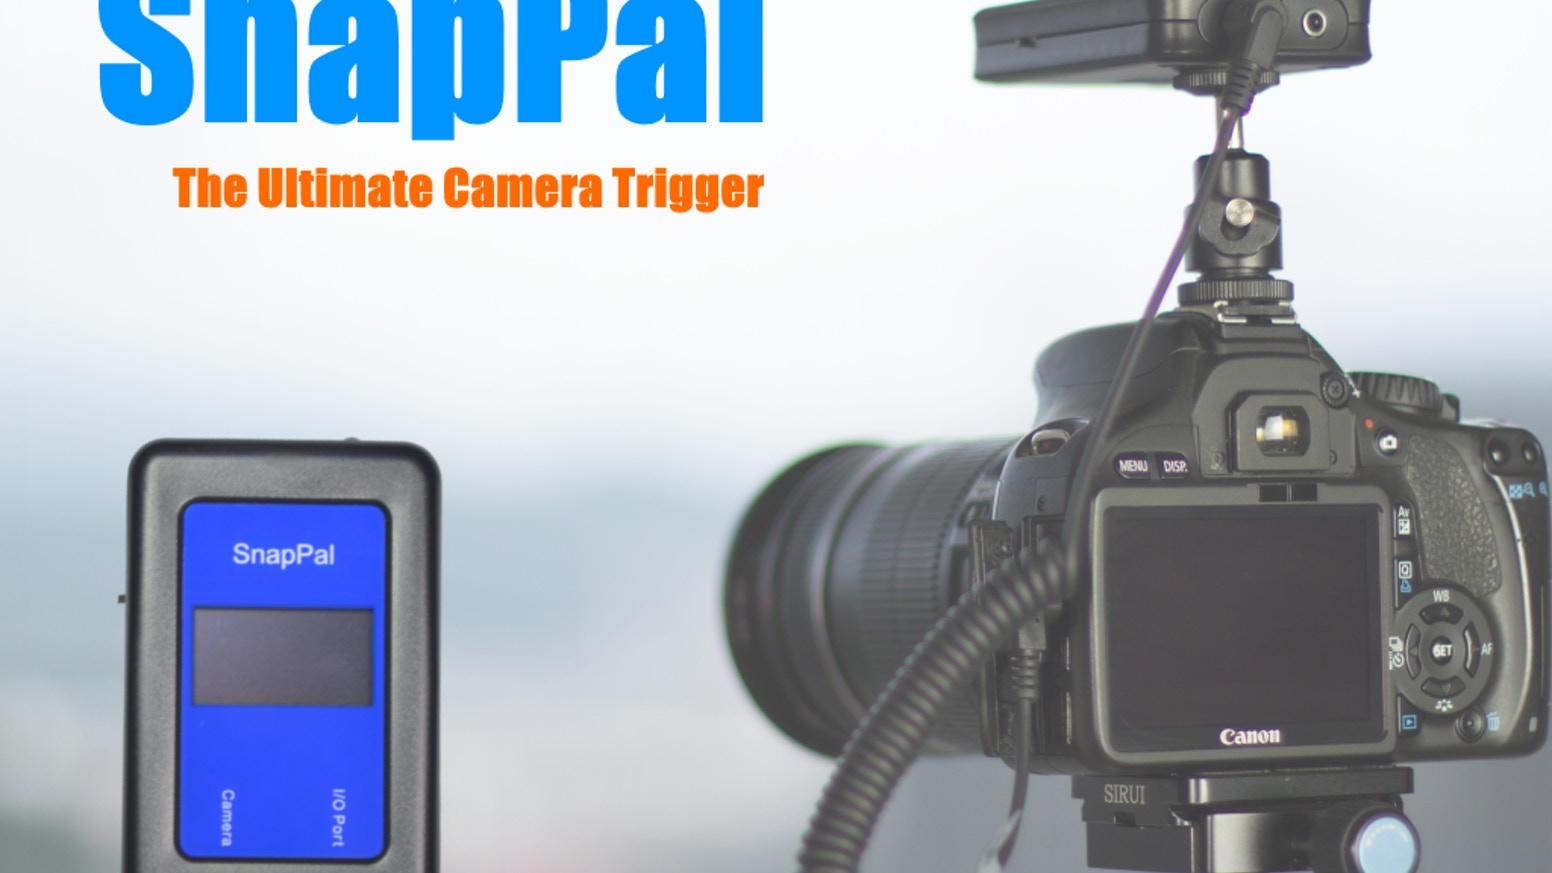 The ultimate, high performance camera trigger for high speed photography, timelapse, motion control and water drop photography